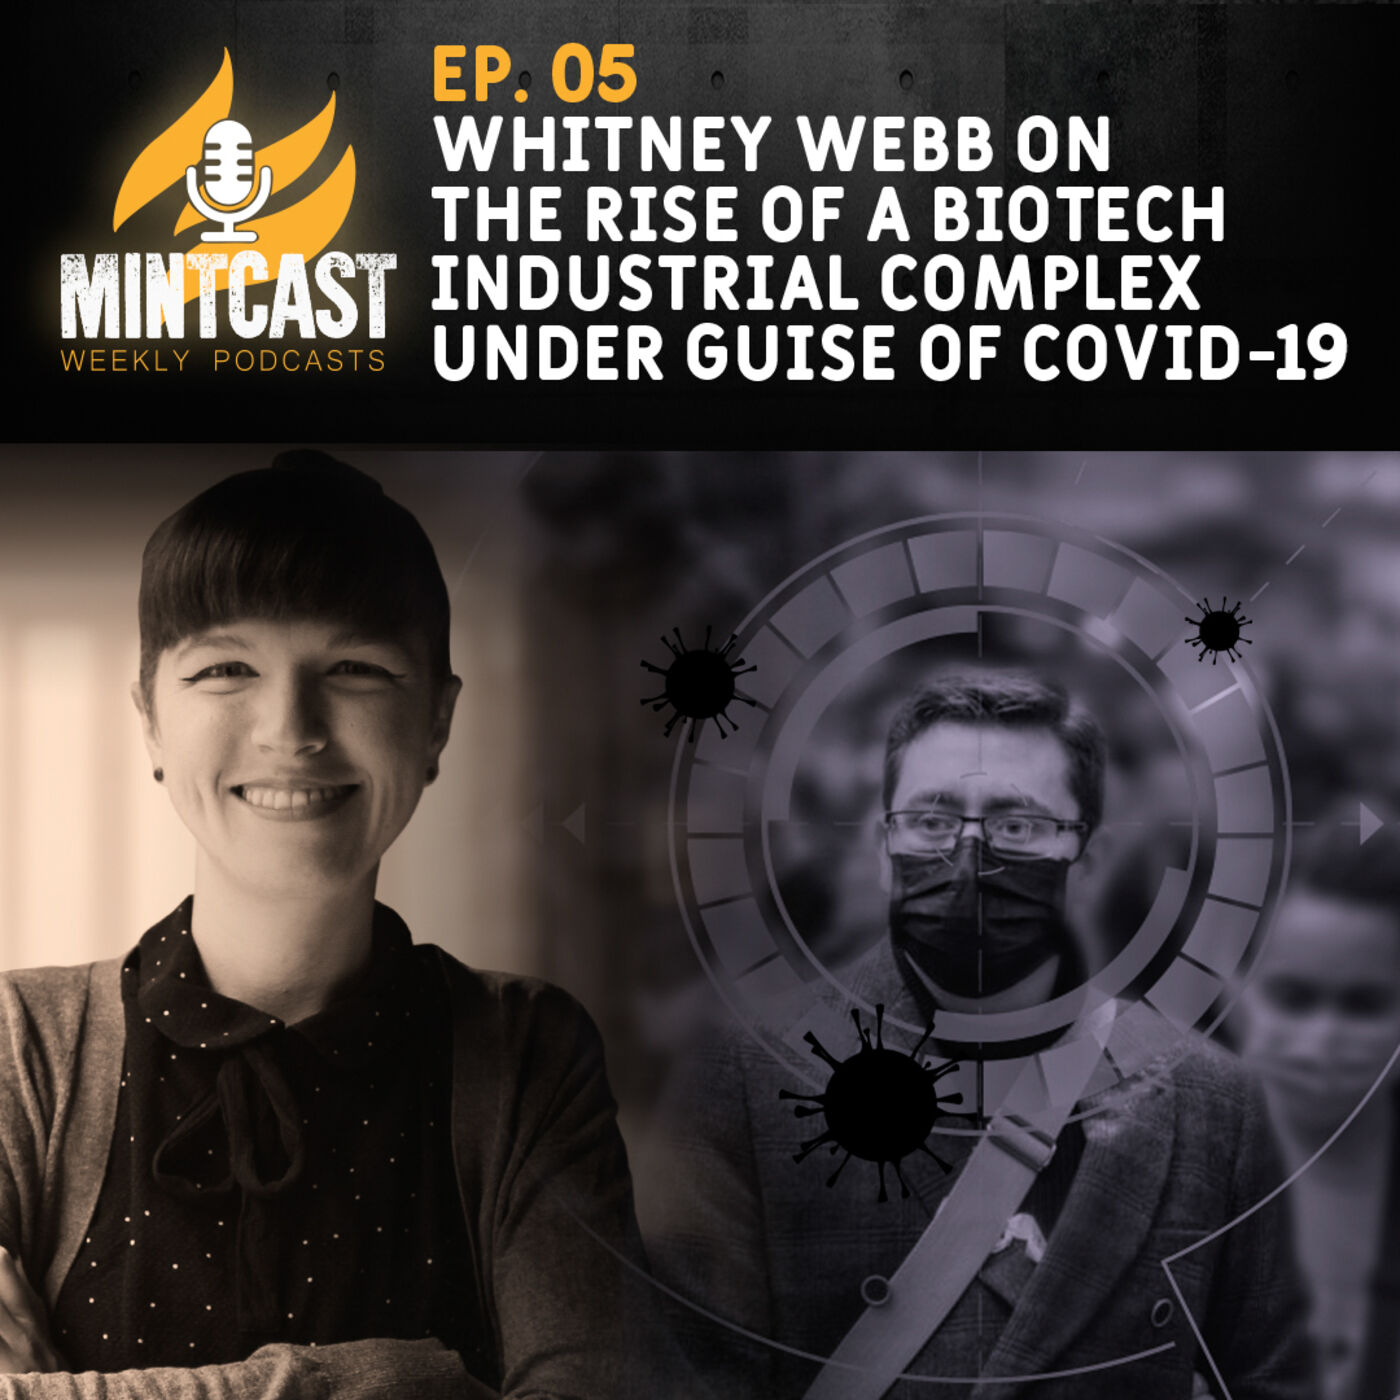 Podcast: Whitney Webb on the Rise of the Biotech Industrial Complex Under COVID-19